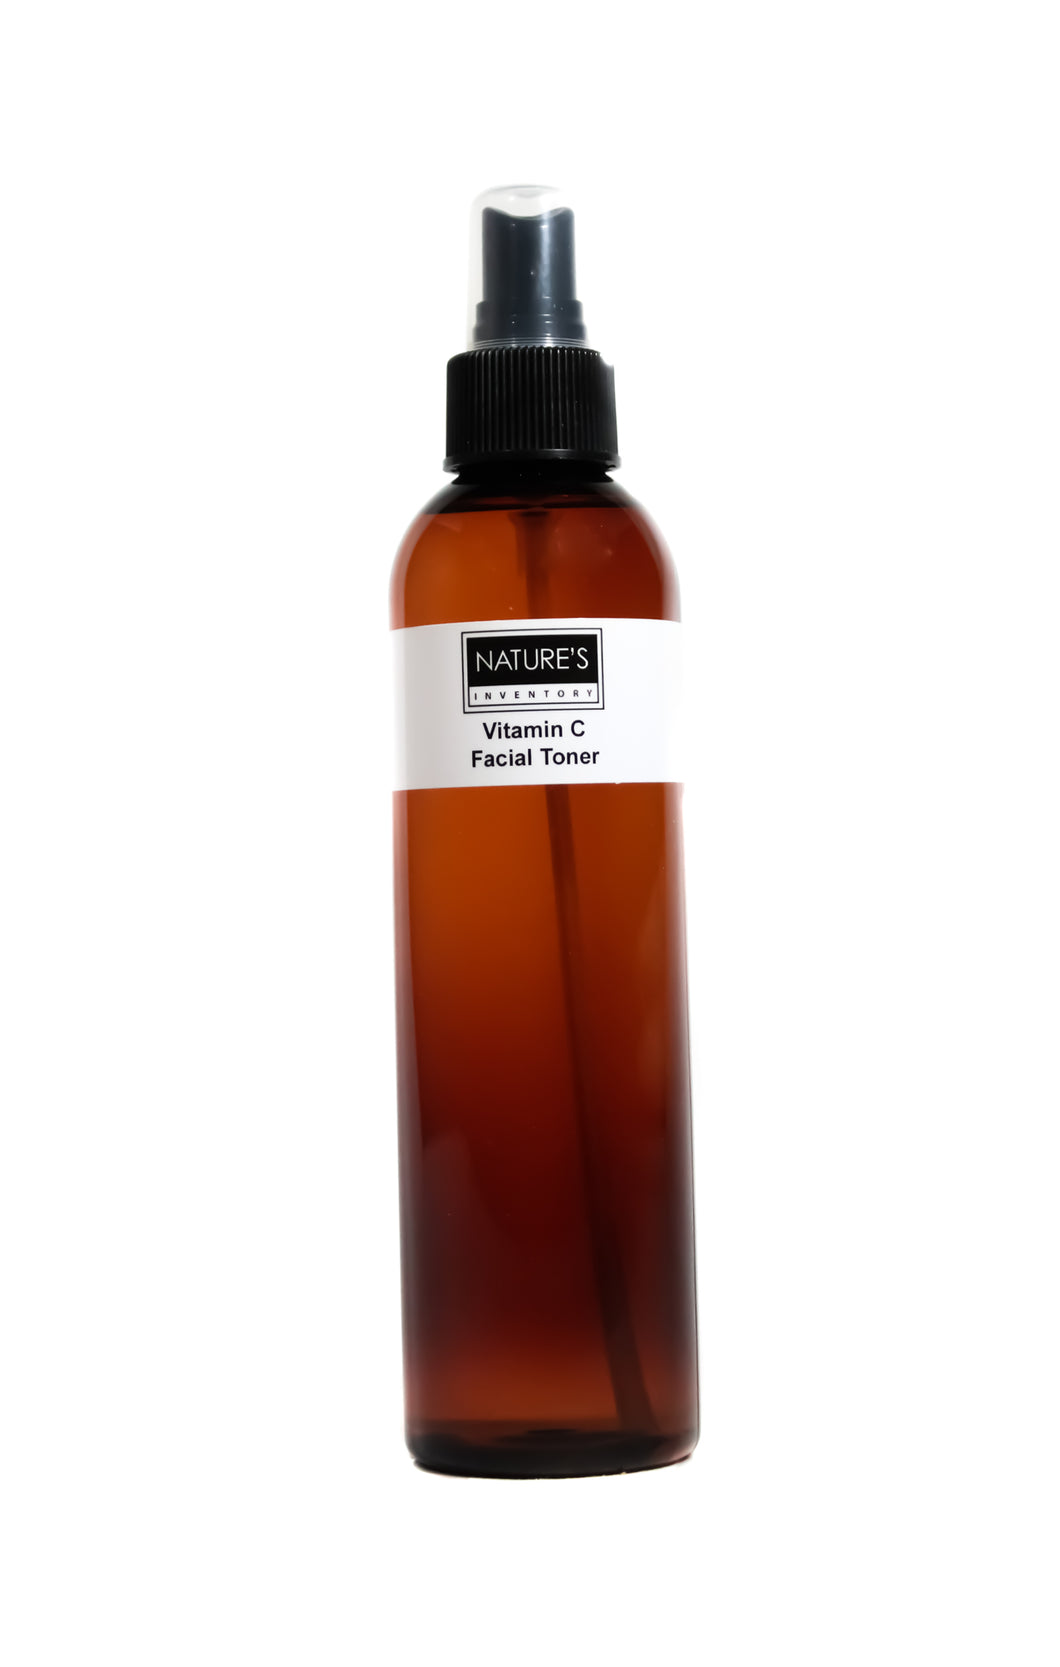 Vitamin C Facial Toner